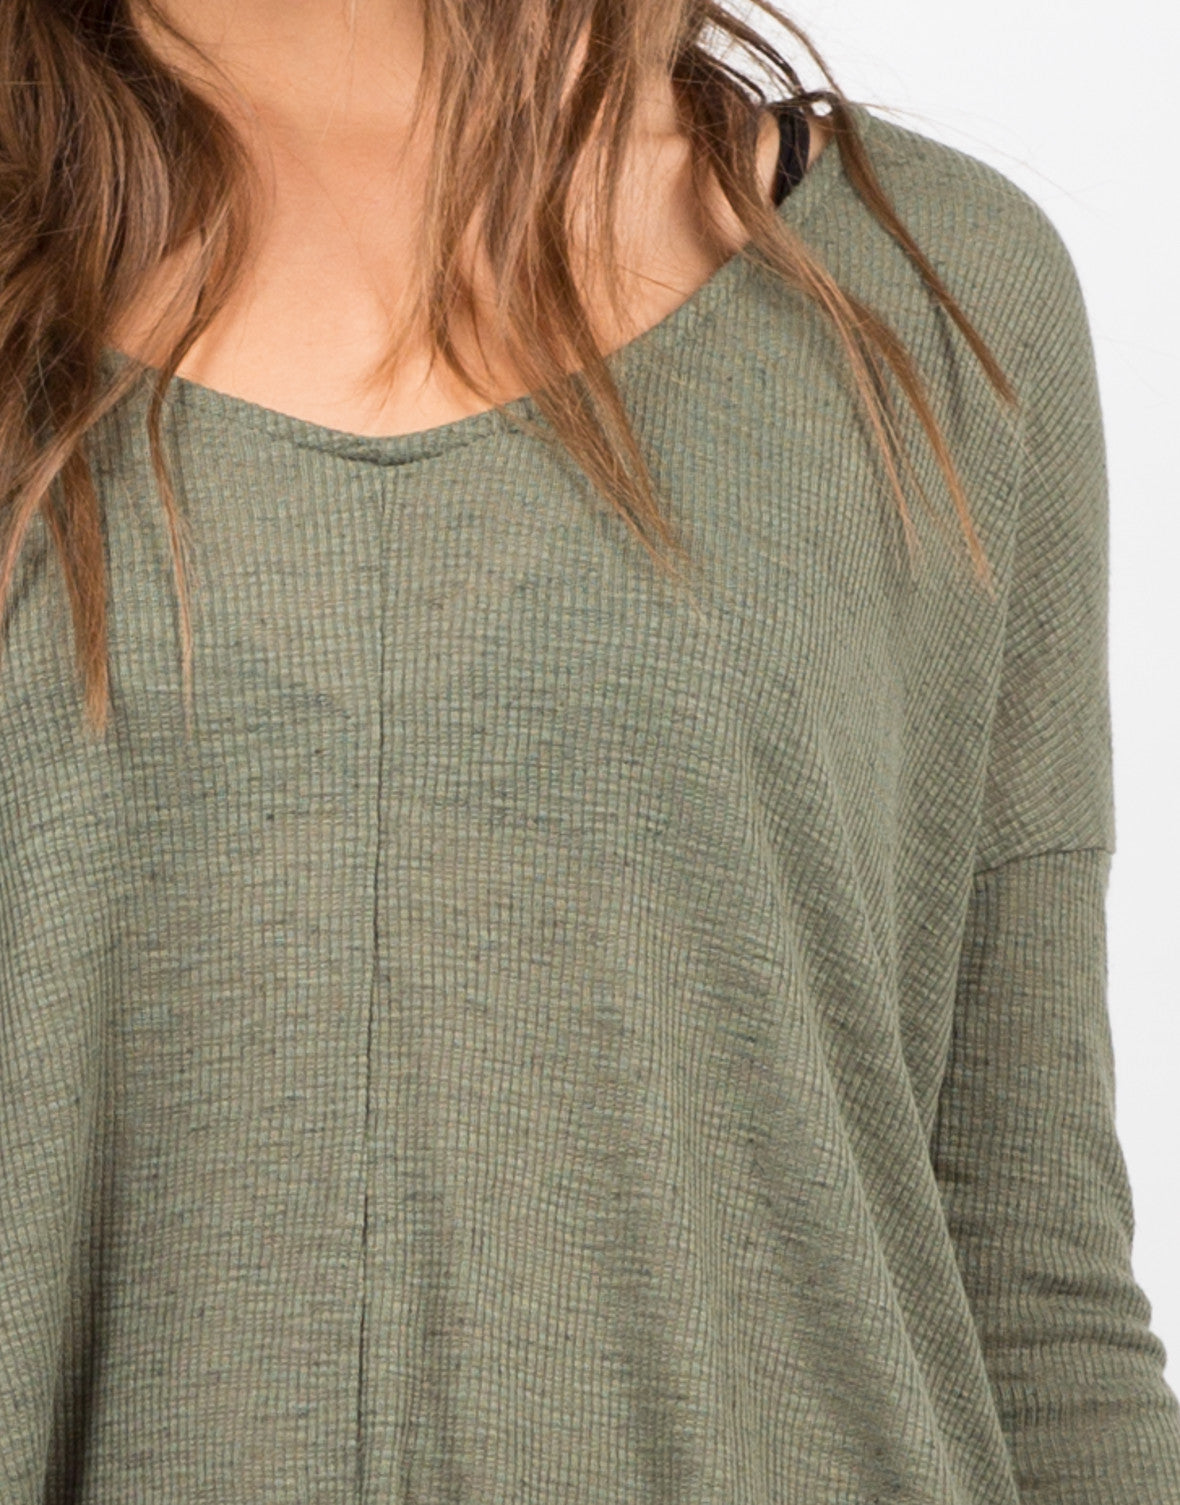 Detail of Long Sleeve V-Neck Top